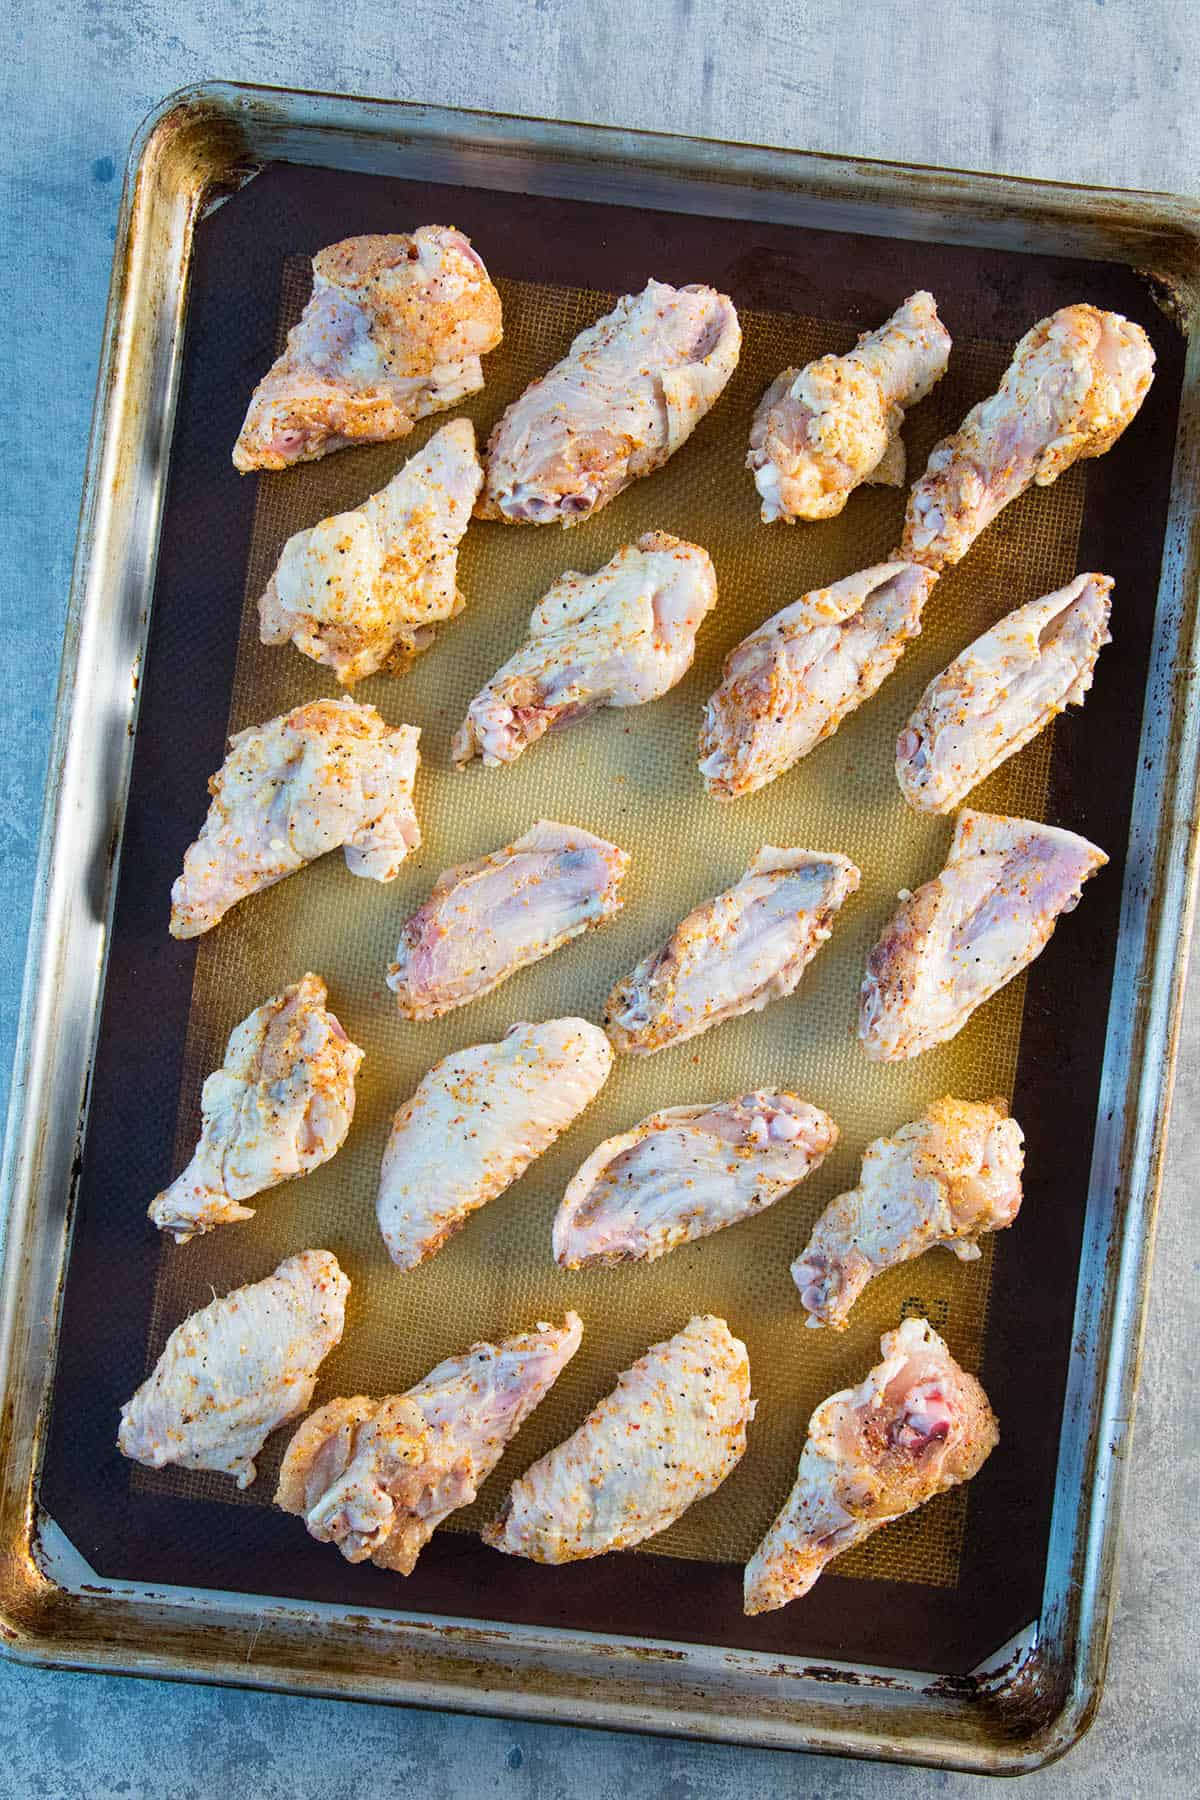 Chicken Wings Before They are Baked